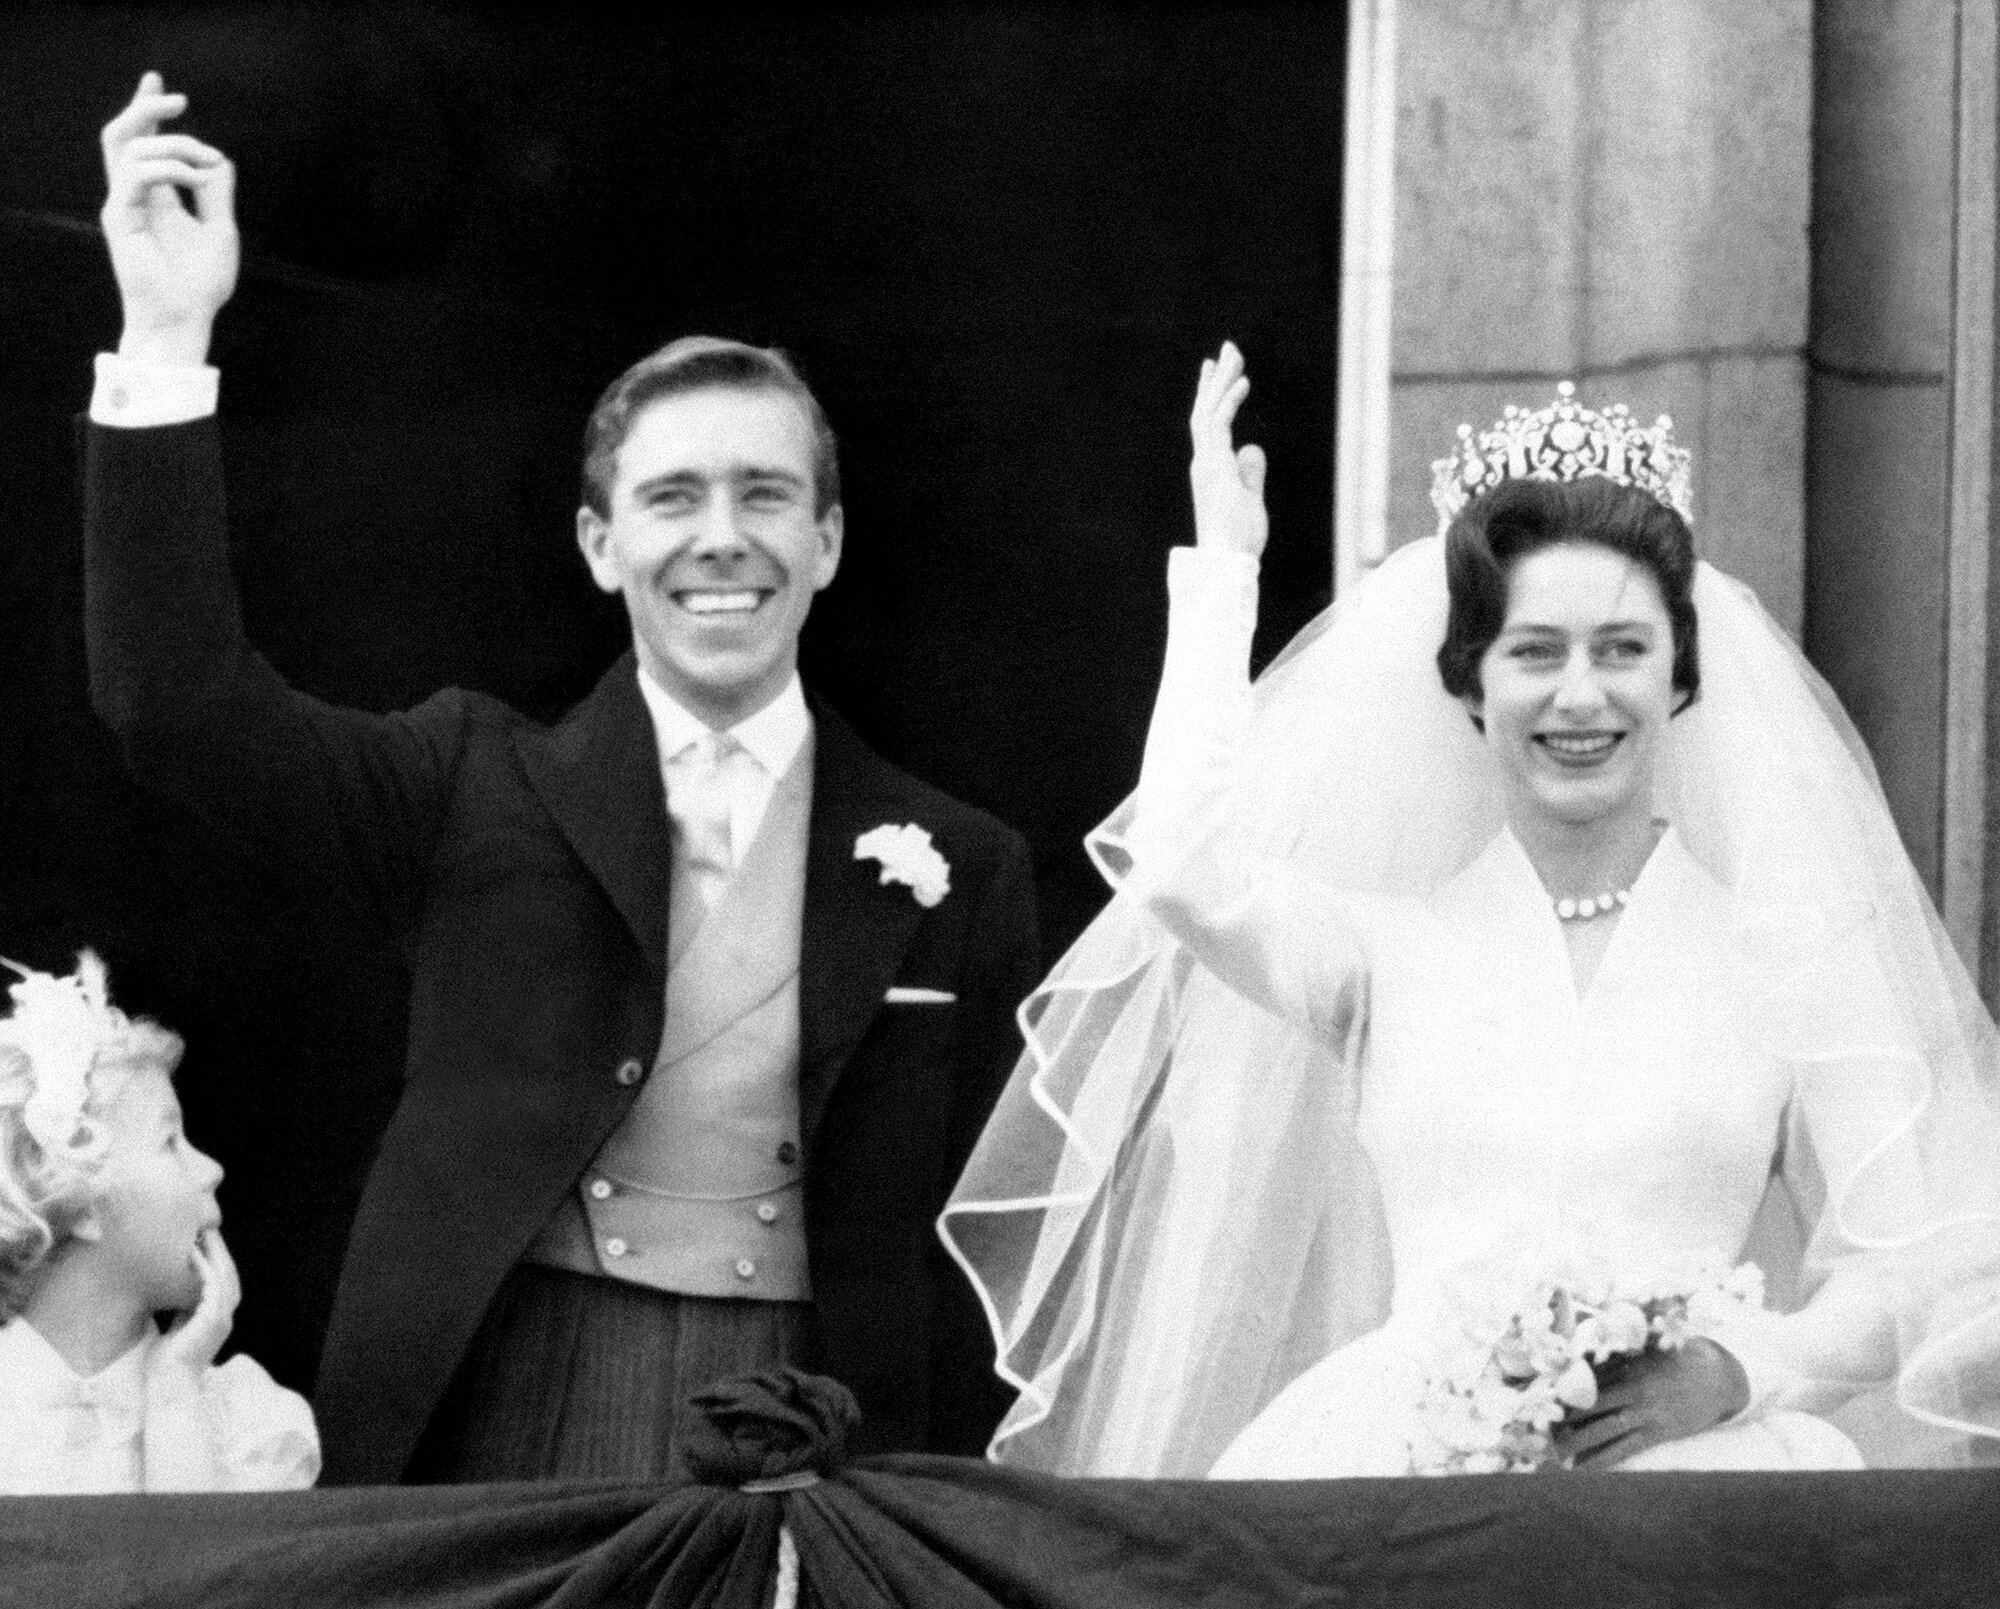 Lord Snowdon Princess Margaret S Former Husband Dies At 86